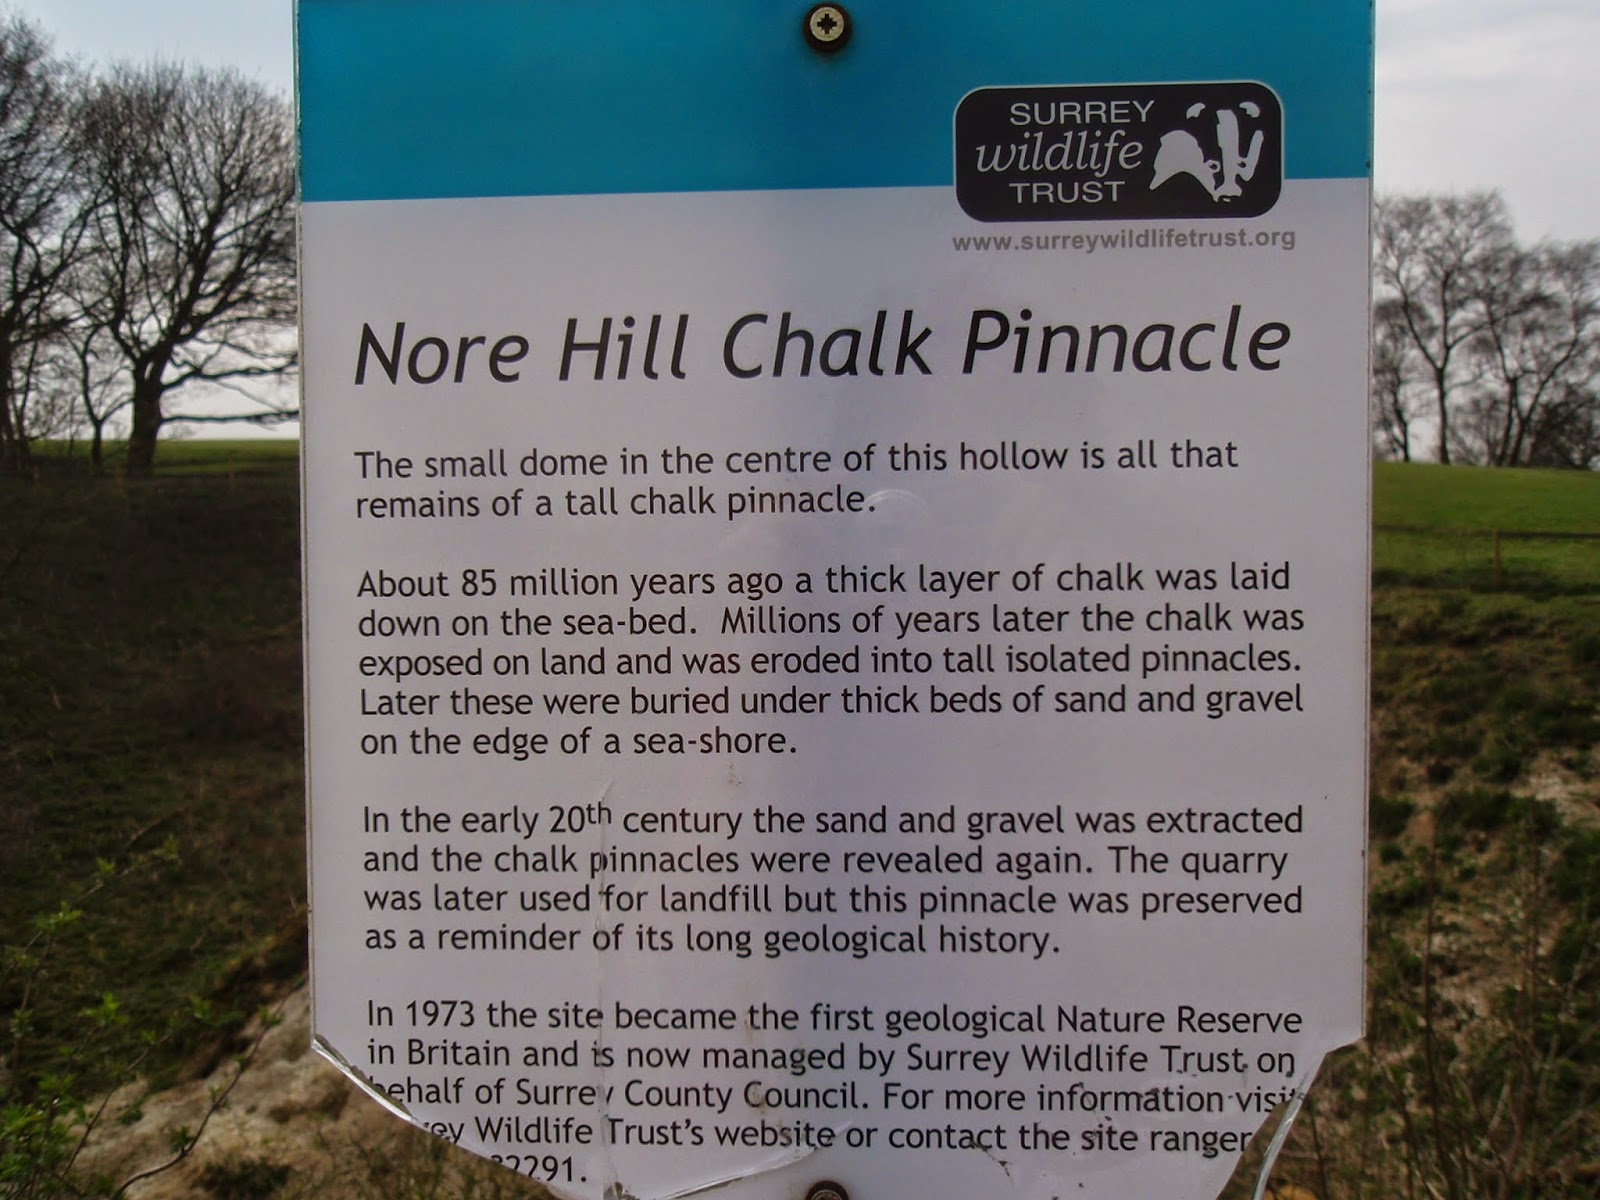 Nore Hill Chalk Pinnacle